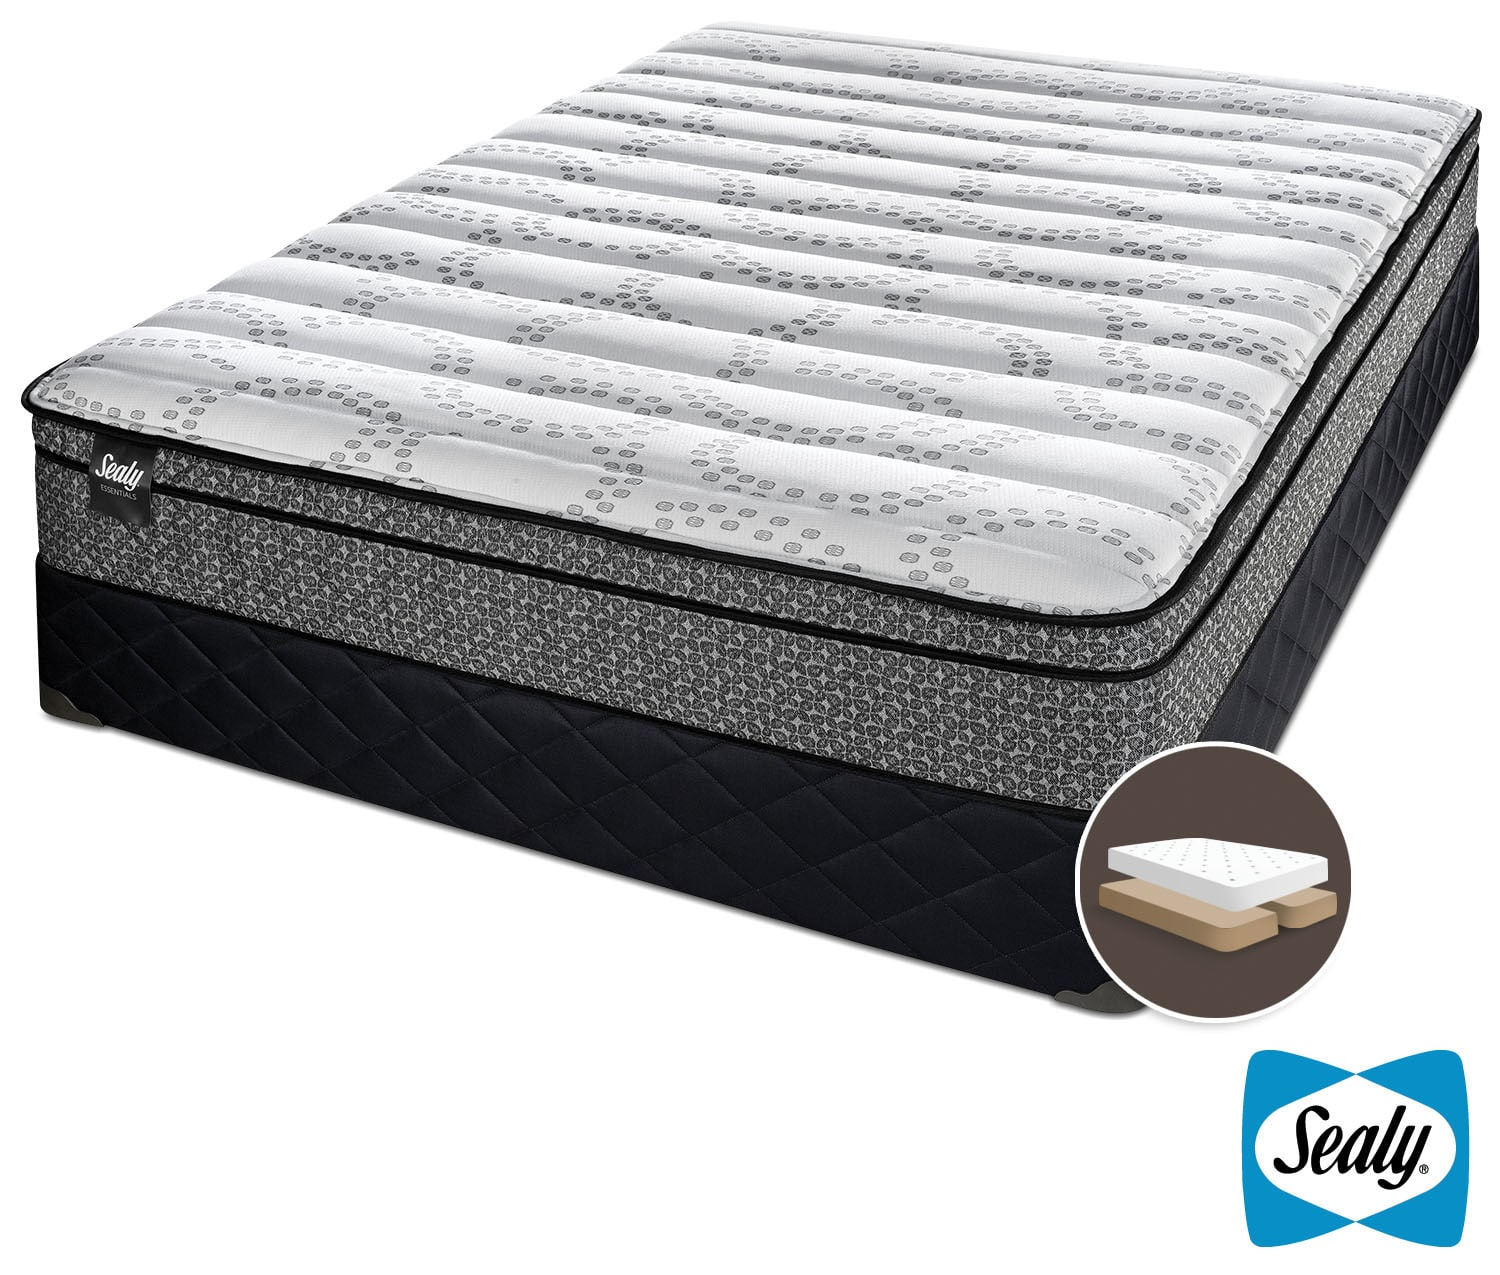 Cushion Firm Mattresses Images Rv Queen Mattress Size